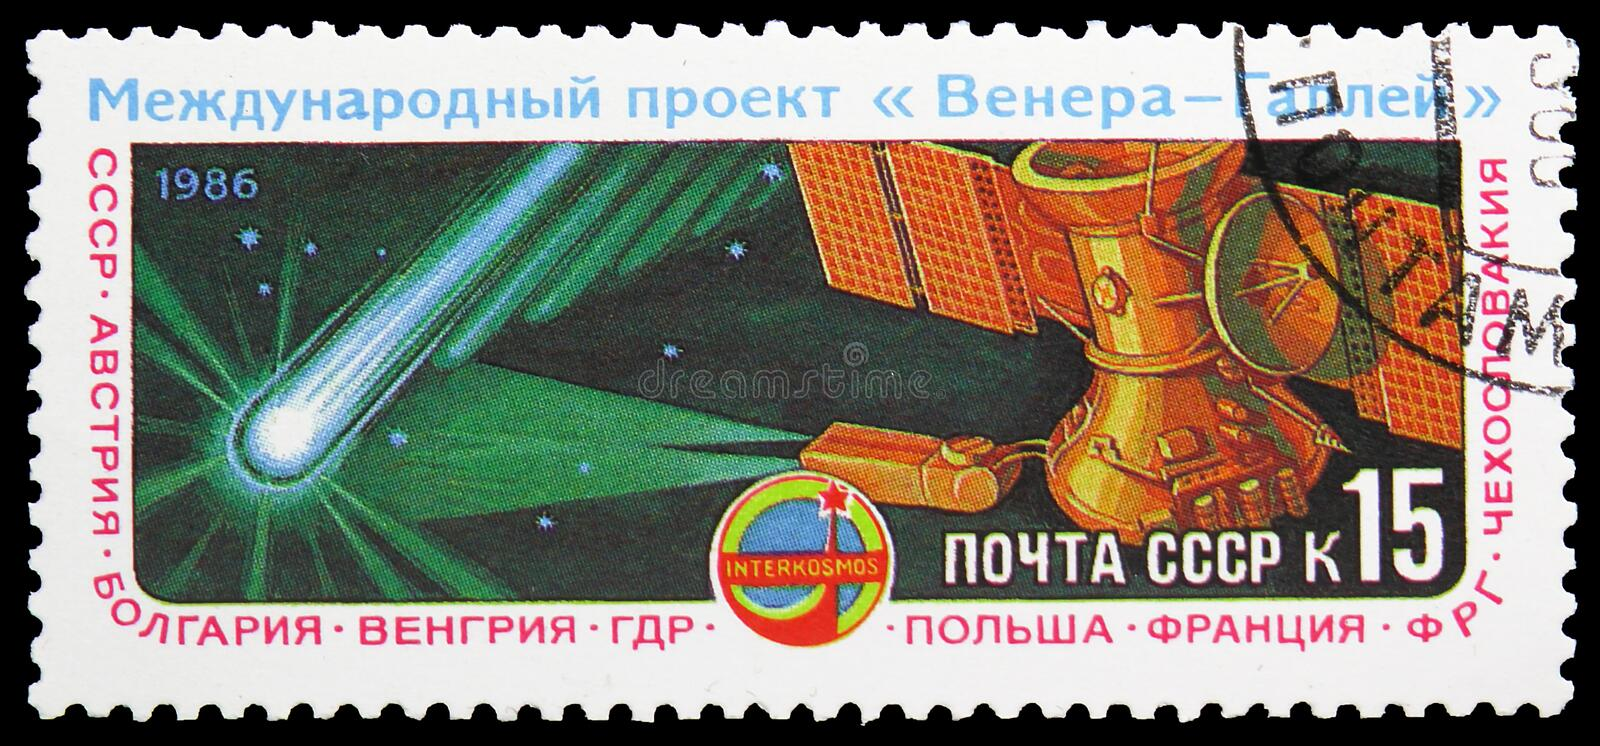 Vega probe, comet, Intercosmos Project Halley, Final Stage serie, circa 1986. MOSCOW, RUSSIA - MAY 25, 2019: Postage stamp printed in Soviet Union (Russia stock photo